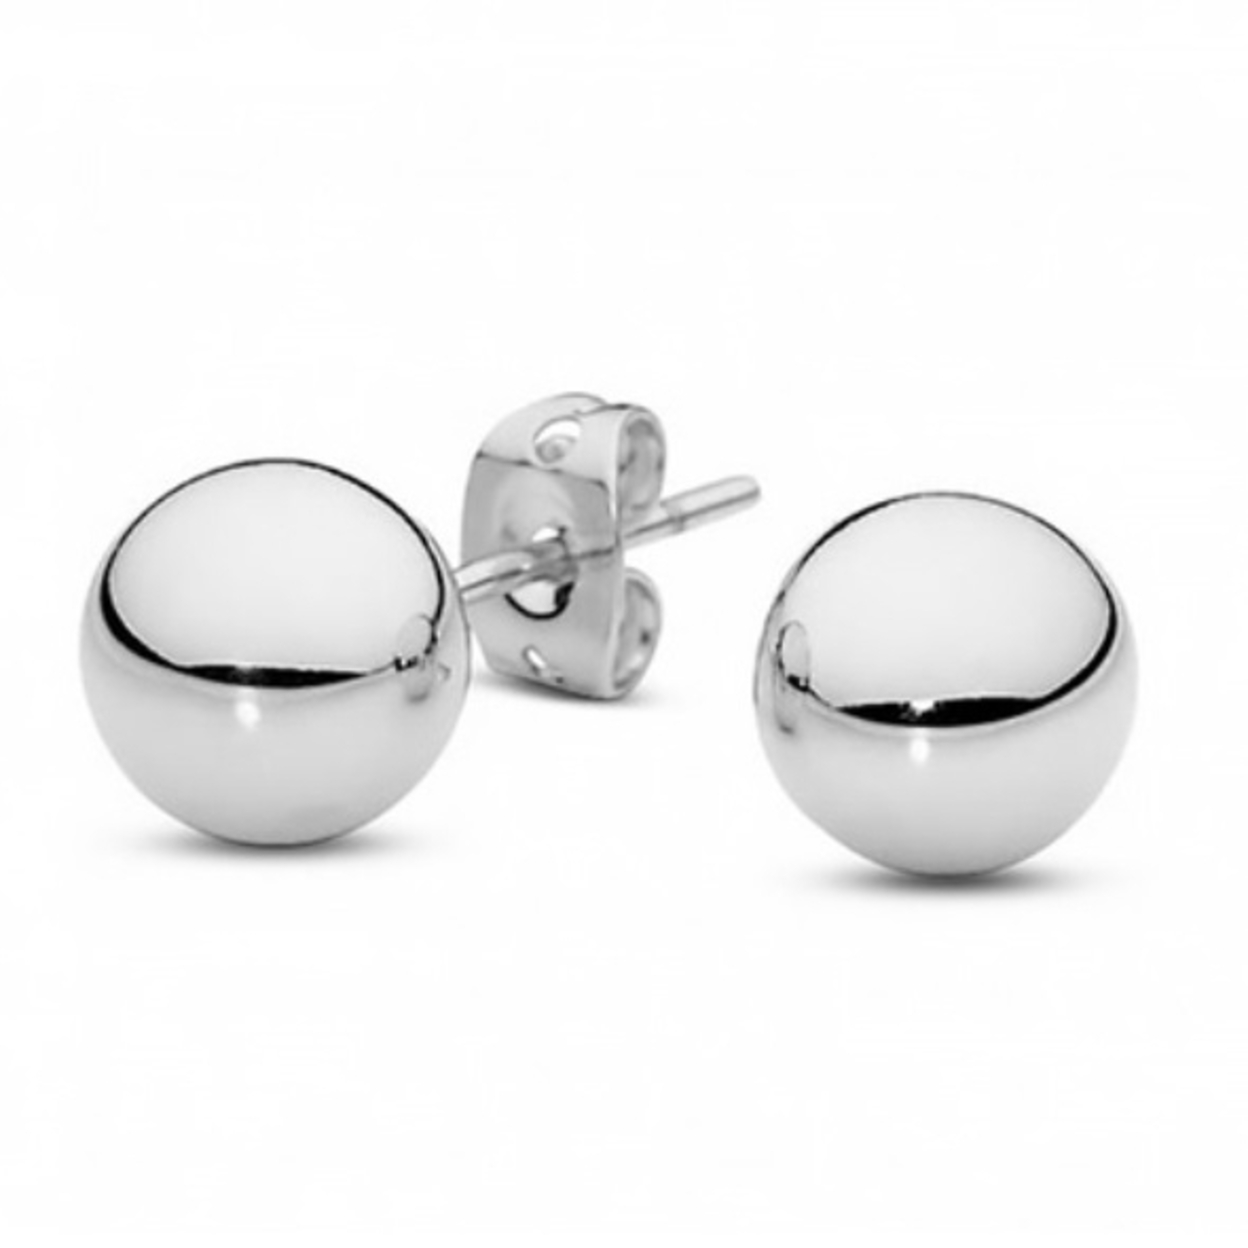 Solid 14Kt White Gold Ball Studs - 4mm